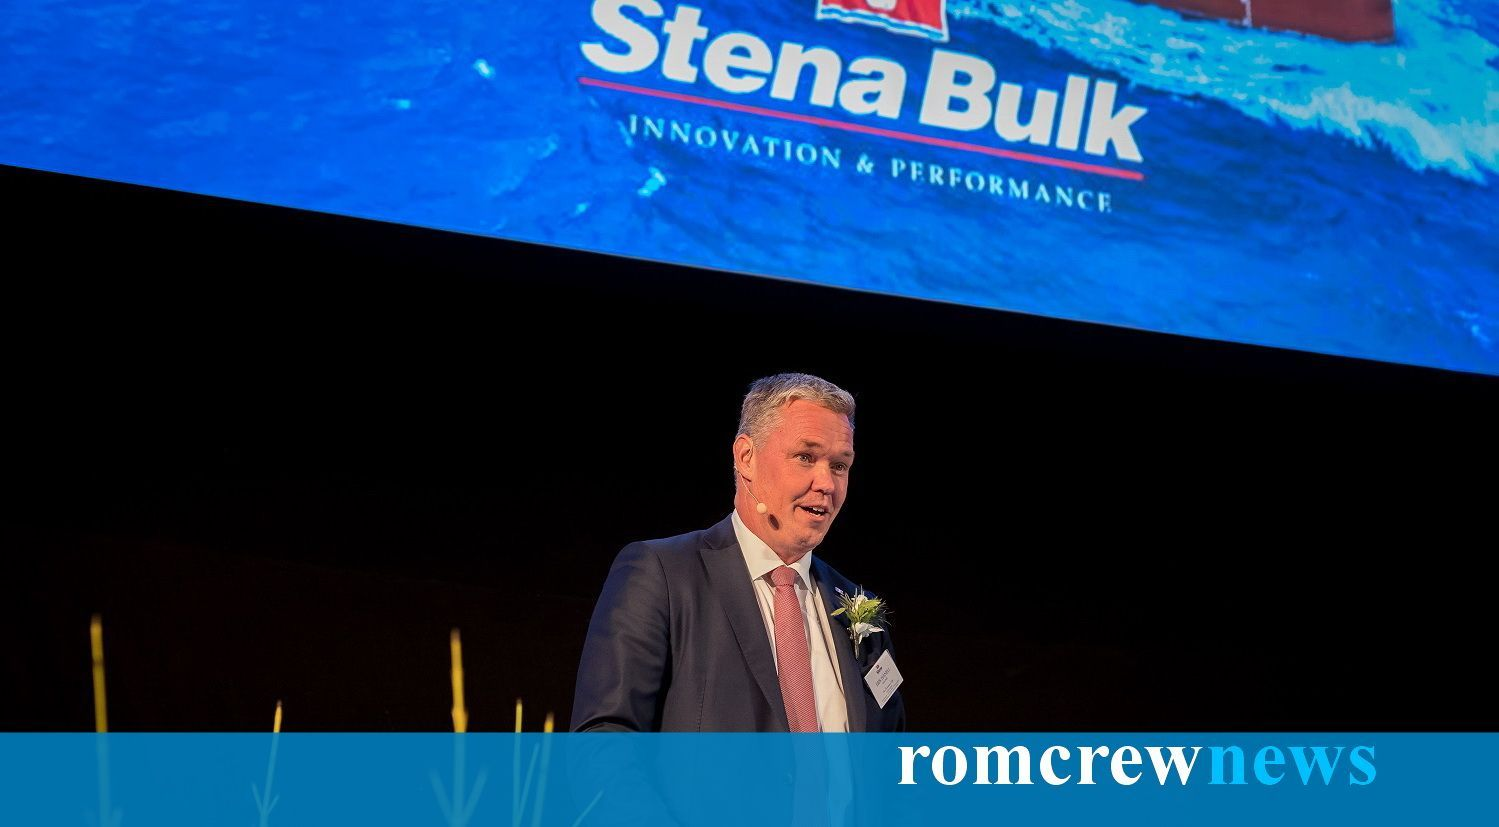 Digital naming of Stena Immortal and inauguration of new Stena office in Copenhagen - Romcrew